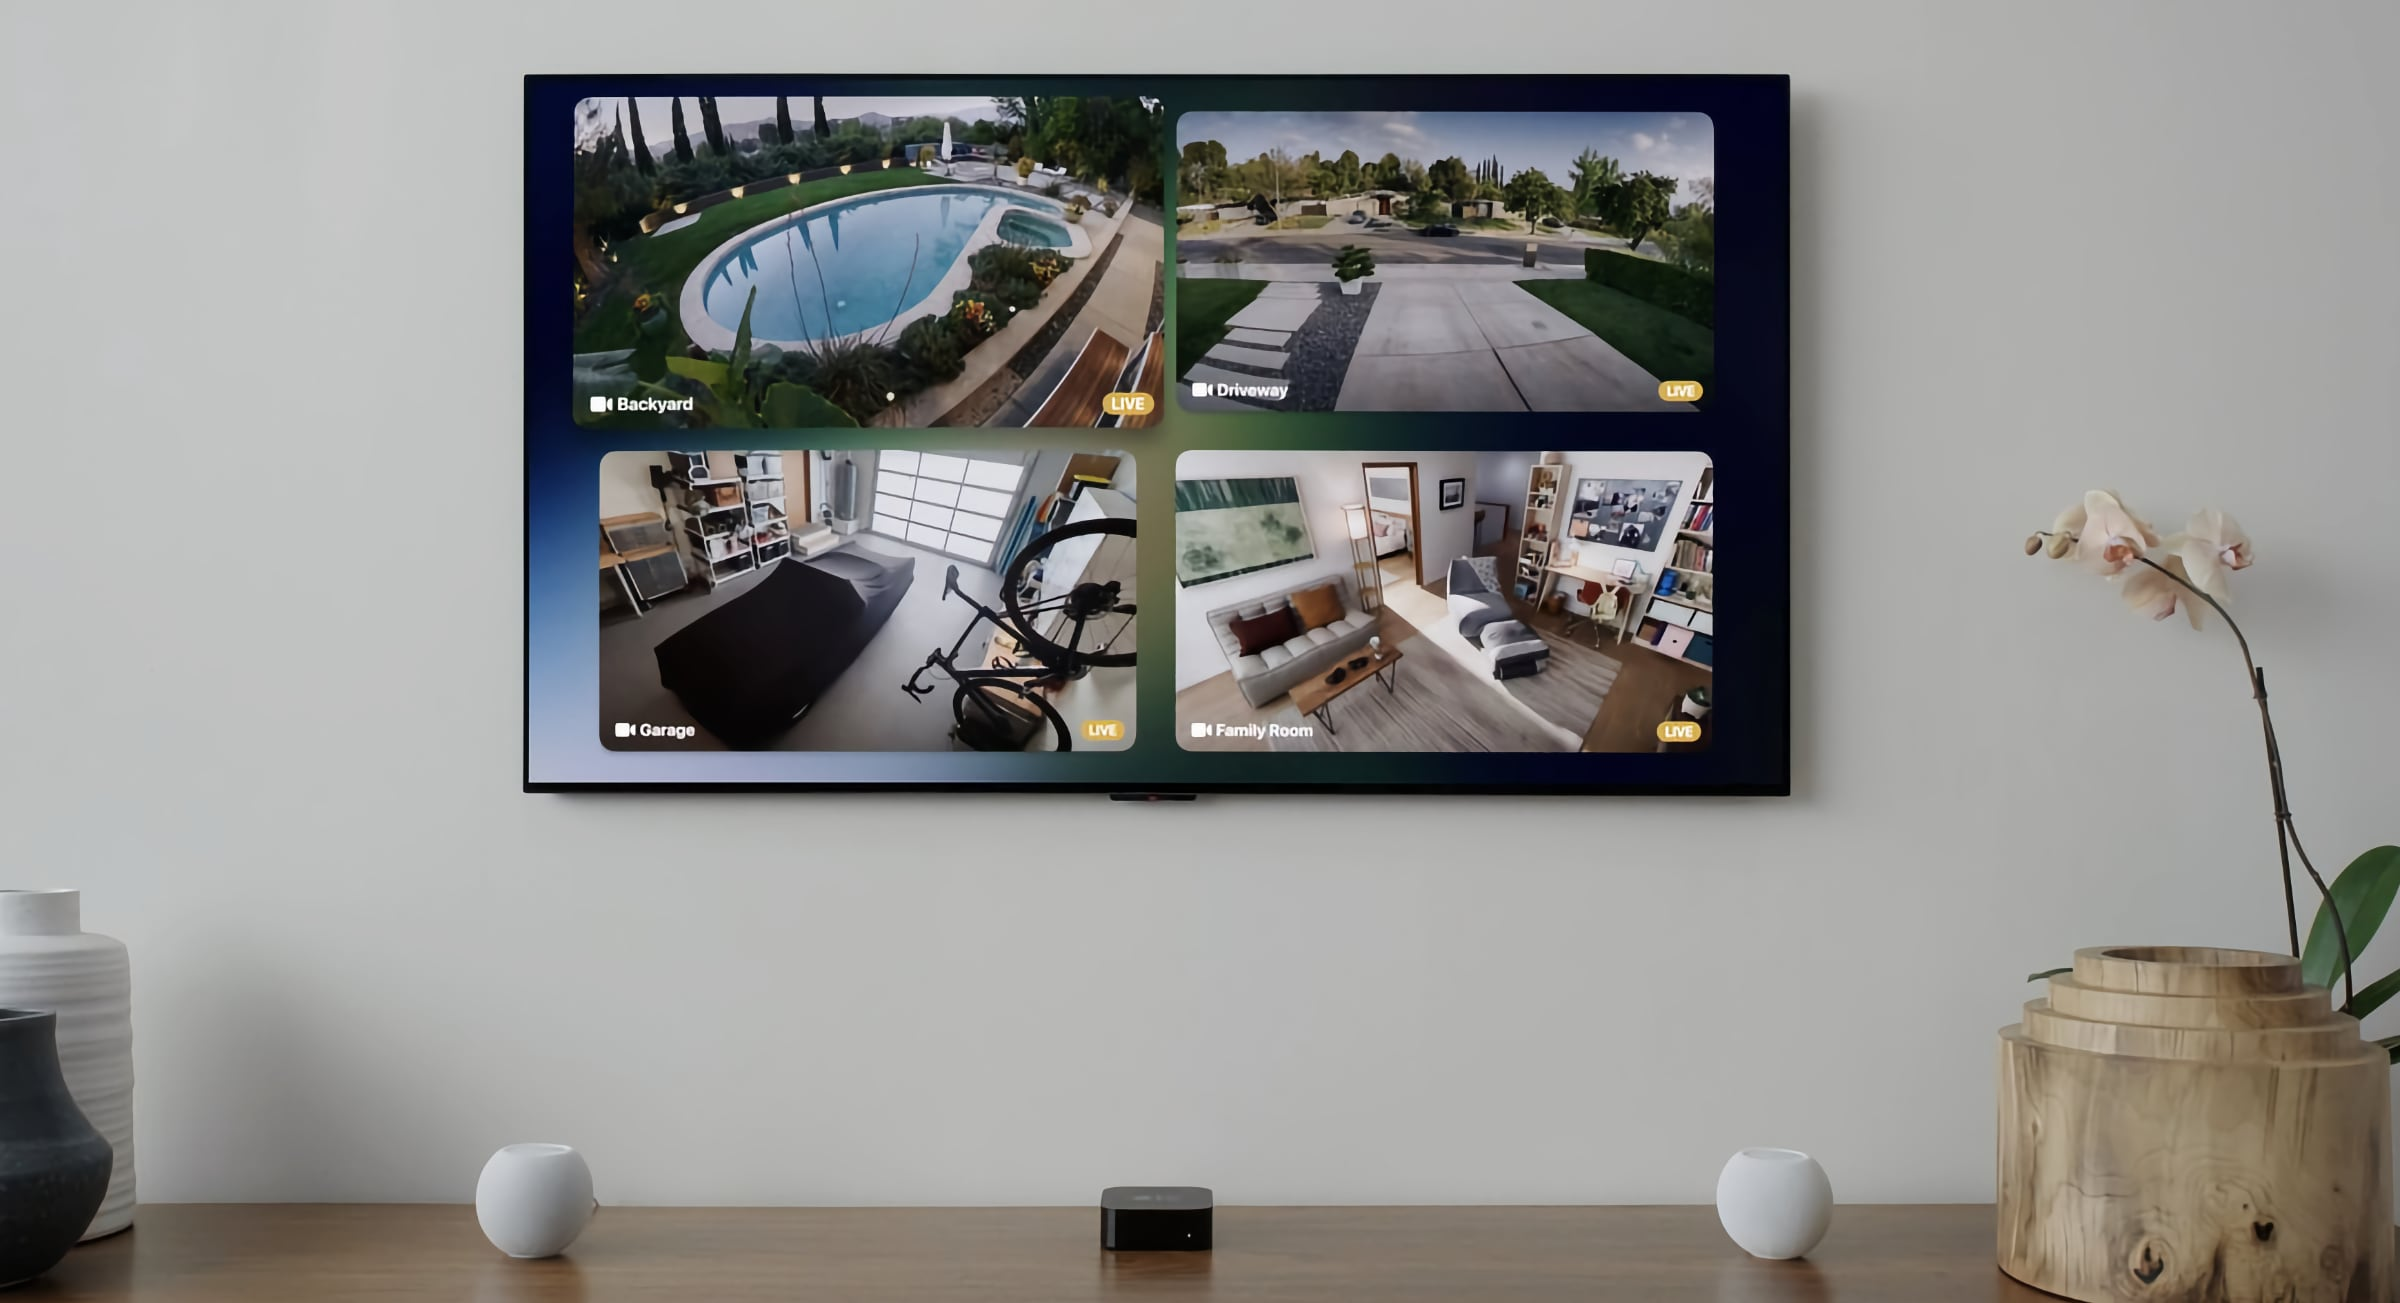 View multiple cameras from your Apple TV.